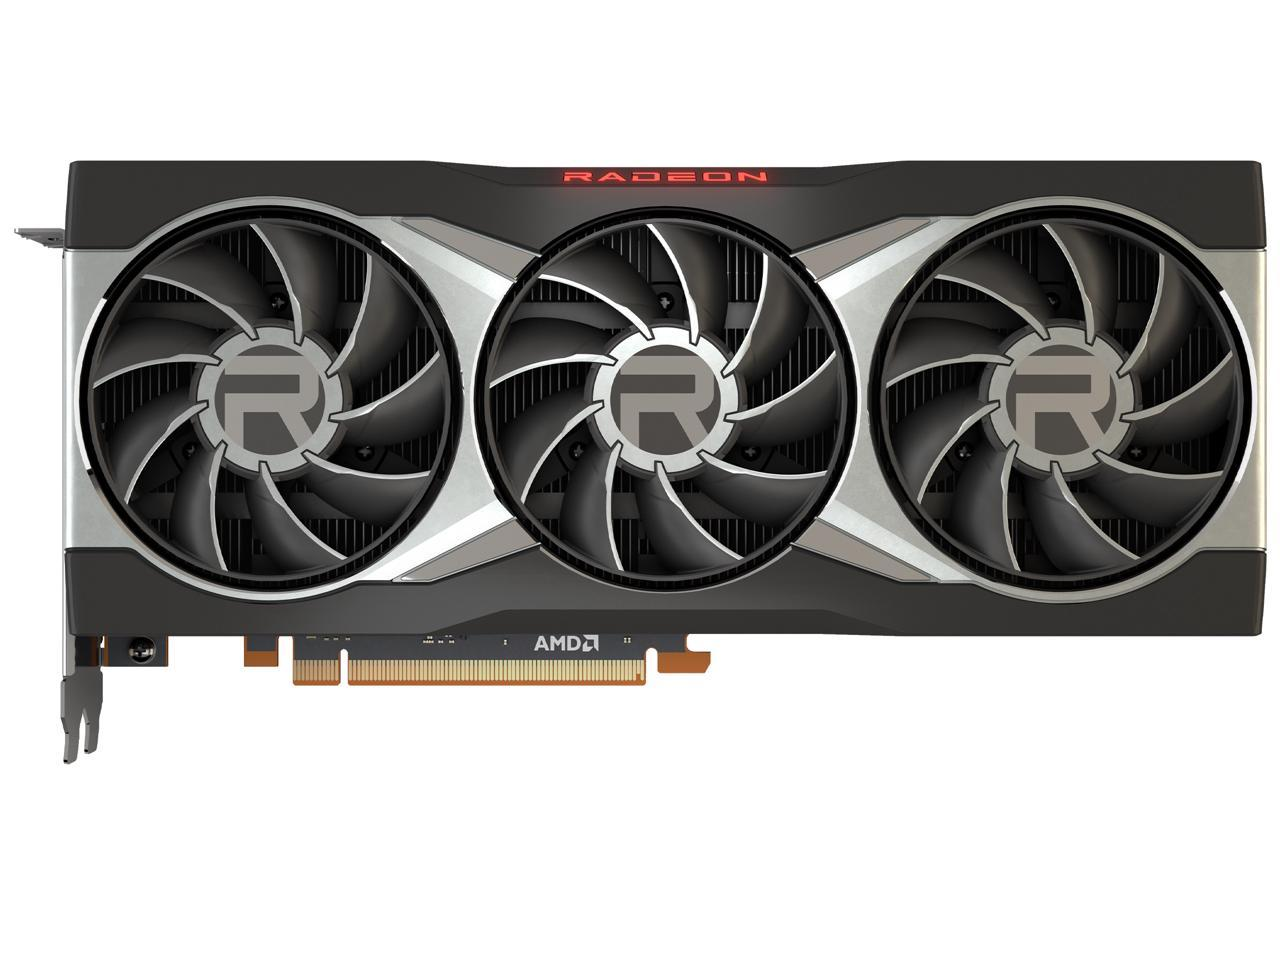 SAPPHIRE Radeon RX 6900 XT DirectX + ASUS ROG Strix LC 240 RGB White Edition All-in-one Liquid CPU Cooler  BUNDLE IN STOCK